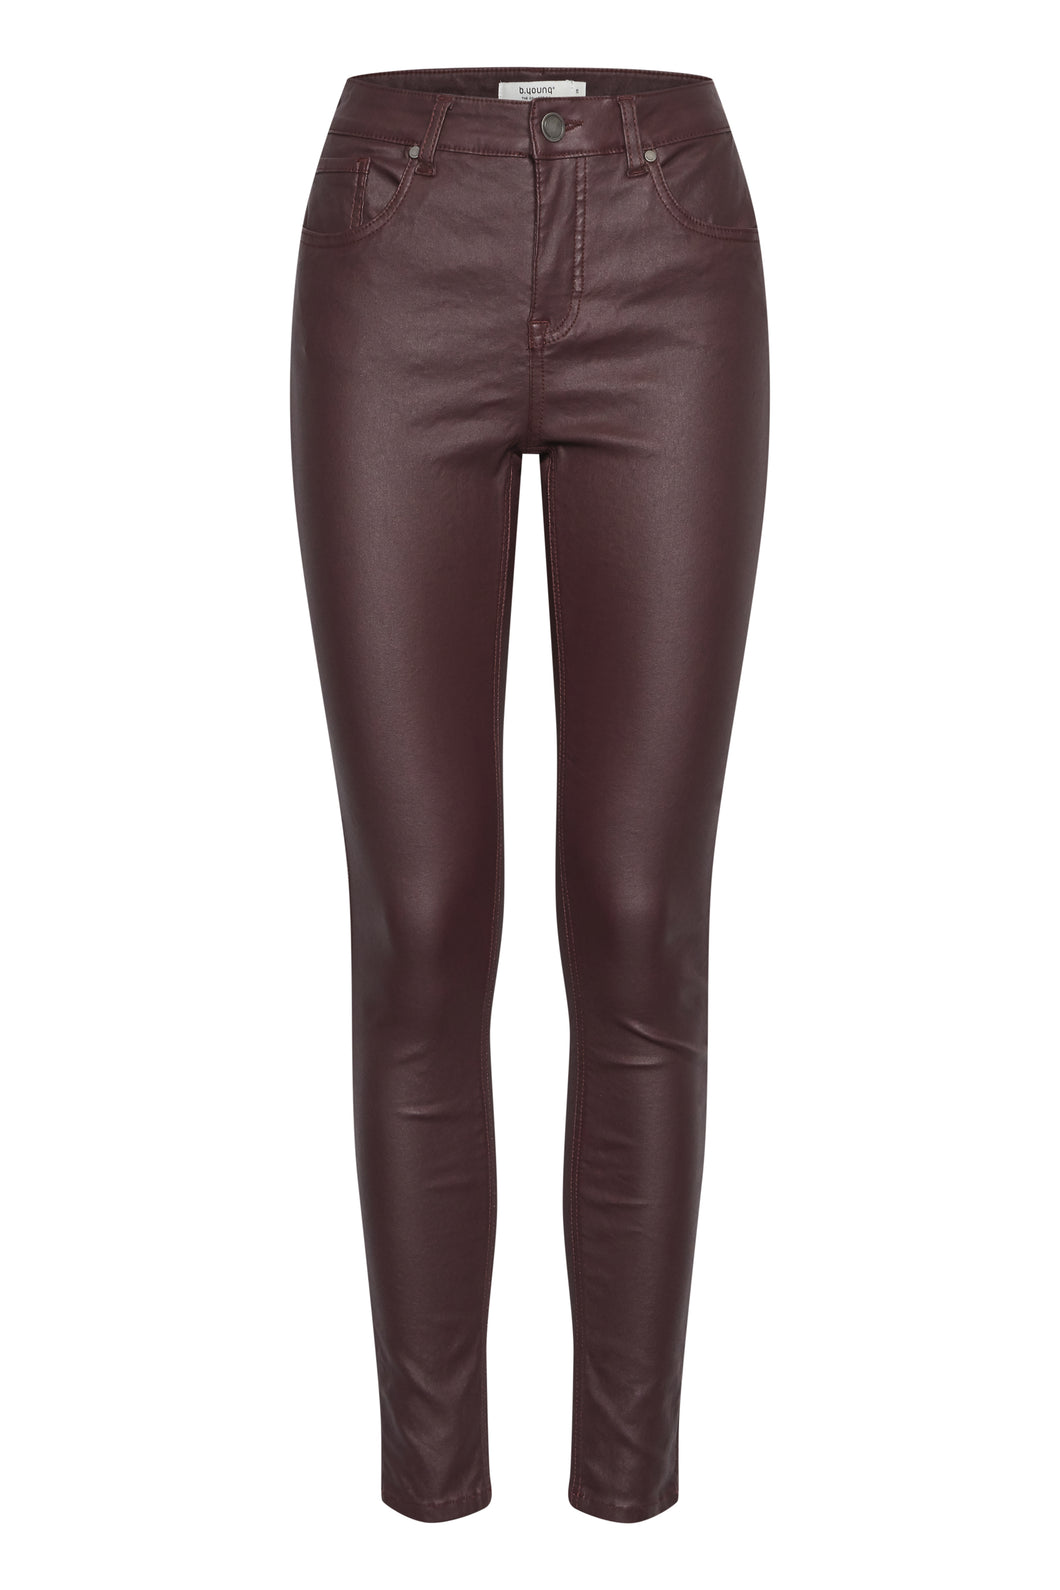 B.Young Coated Stretch Jeans - Wine